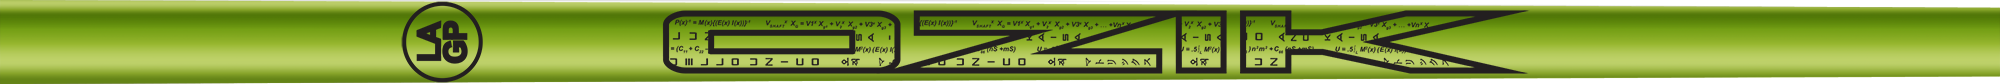 Ozik White Tie: Lime Green Black Gloss - Wood 50 A